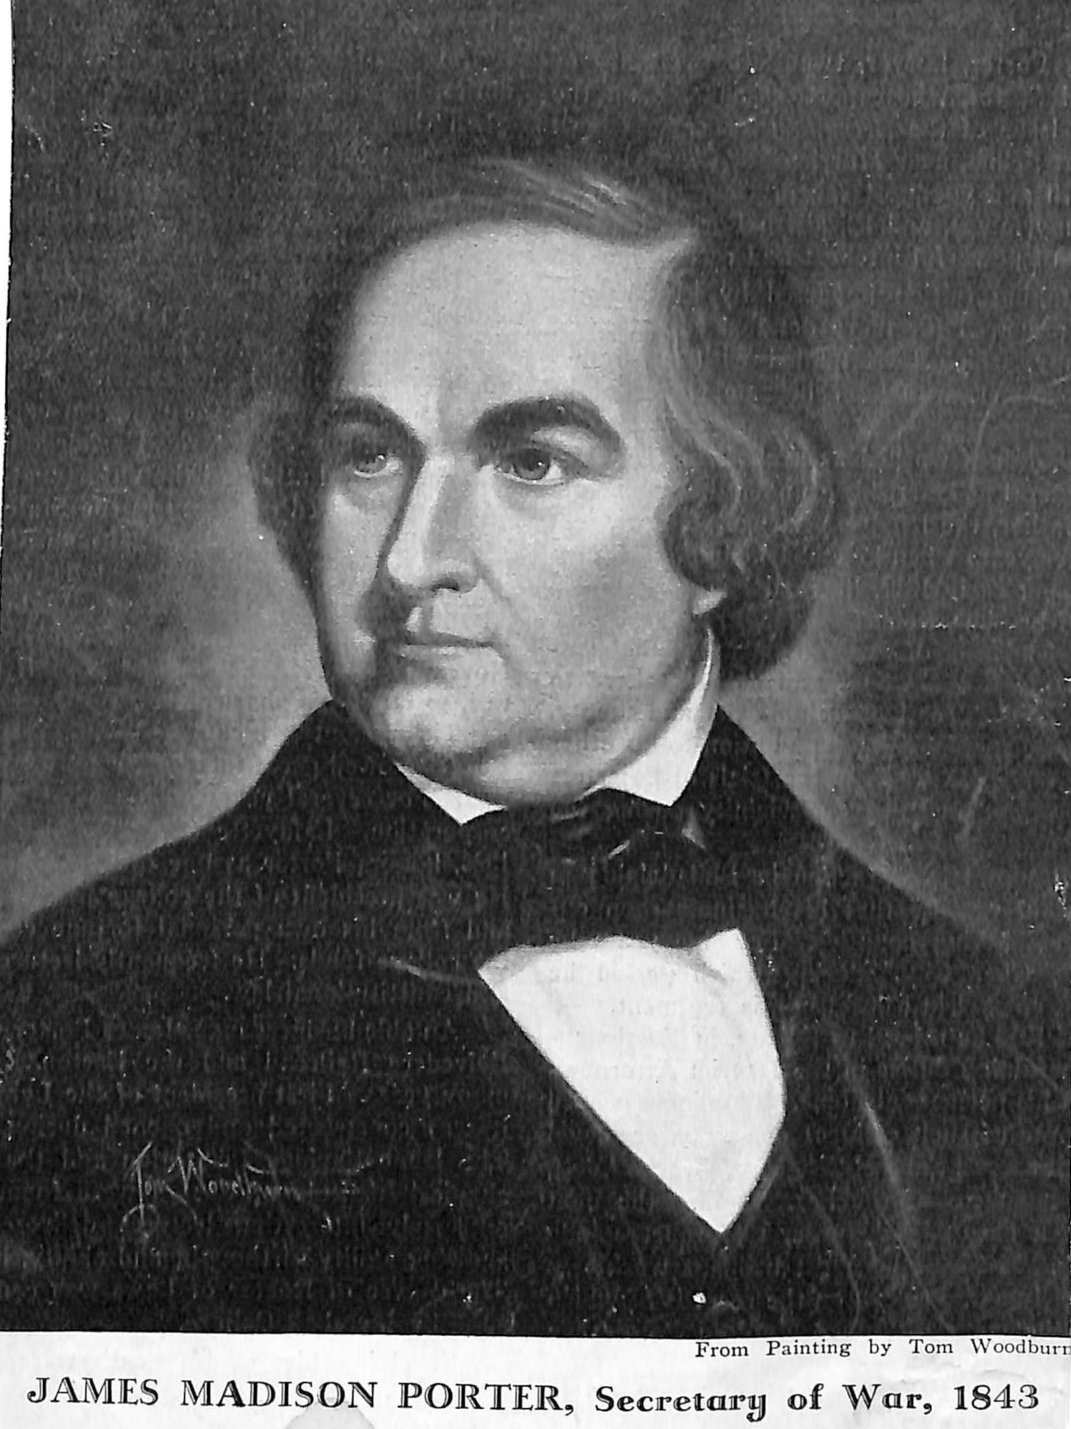 James Madison Porter - Founder of Lafayette College and first president of its Board of Trustees